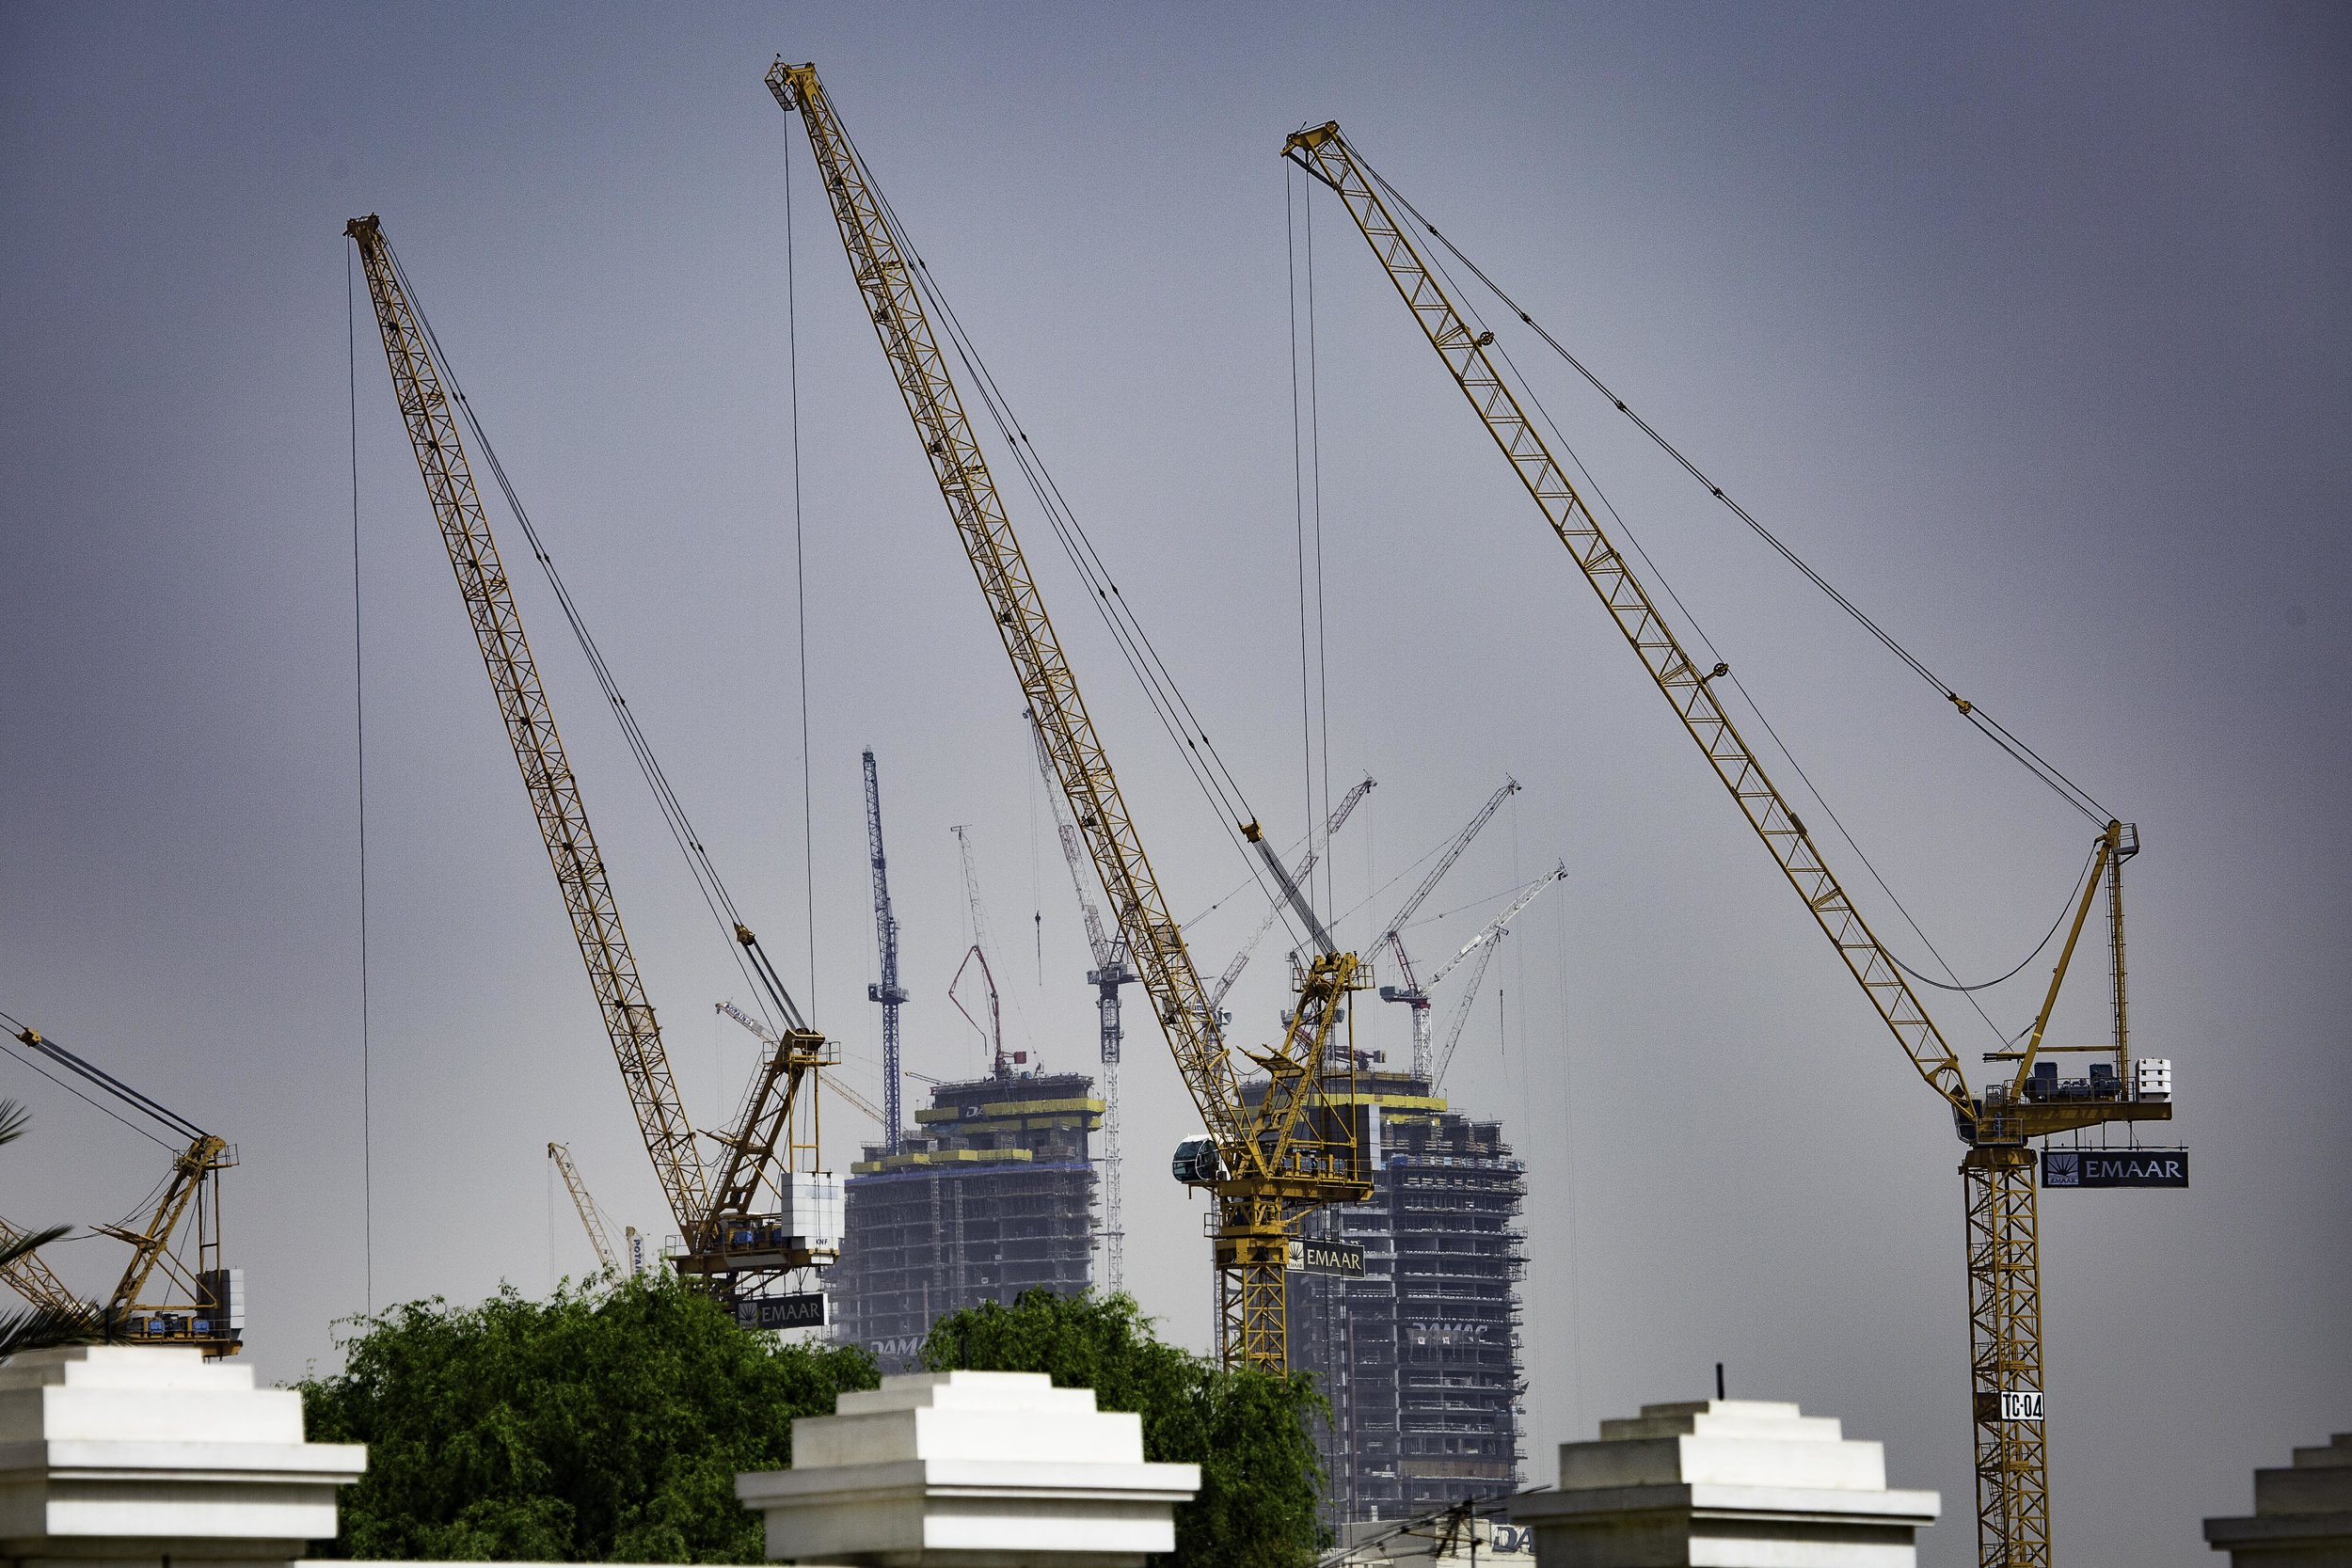 Cranes along the Dubai skyline.jpg